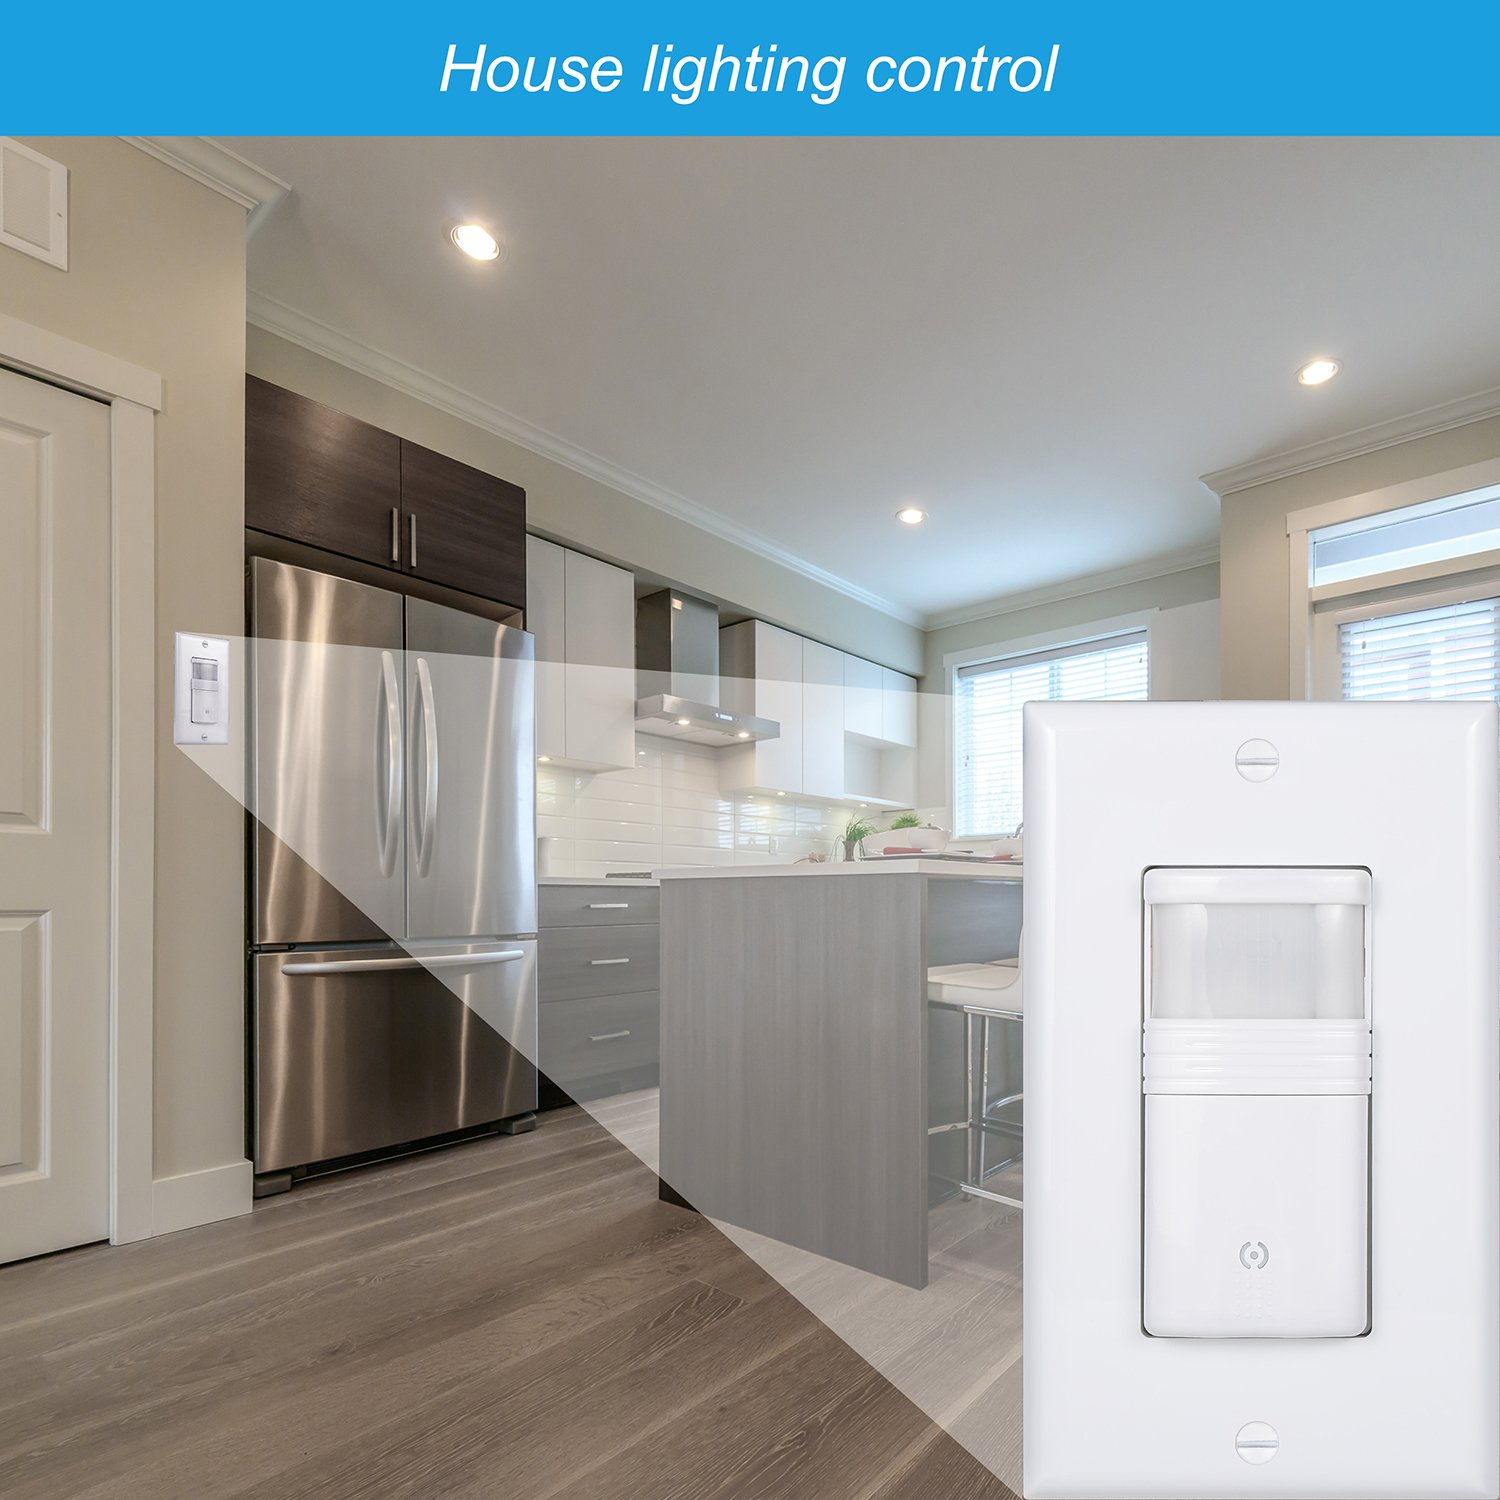 Not 3-Way Adjustable Timer Dependable Direct Vacancy /& Occupancy Modes NEUTRAL Wire Required Title 24 Pack of 10 White Motion Sensor Light Switch UL Certified For Indoor Use Single Pole Only